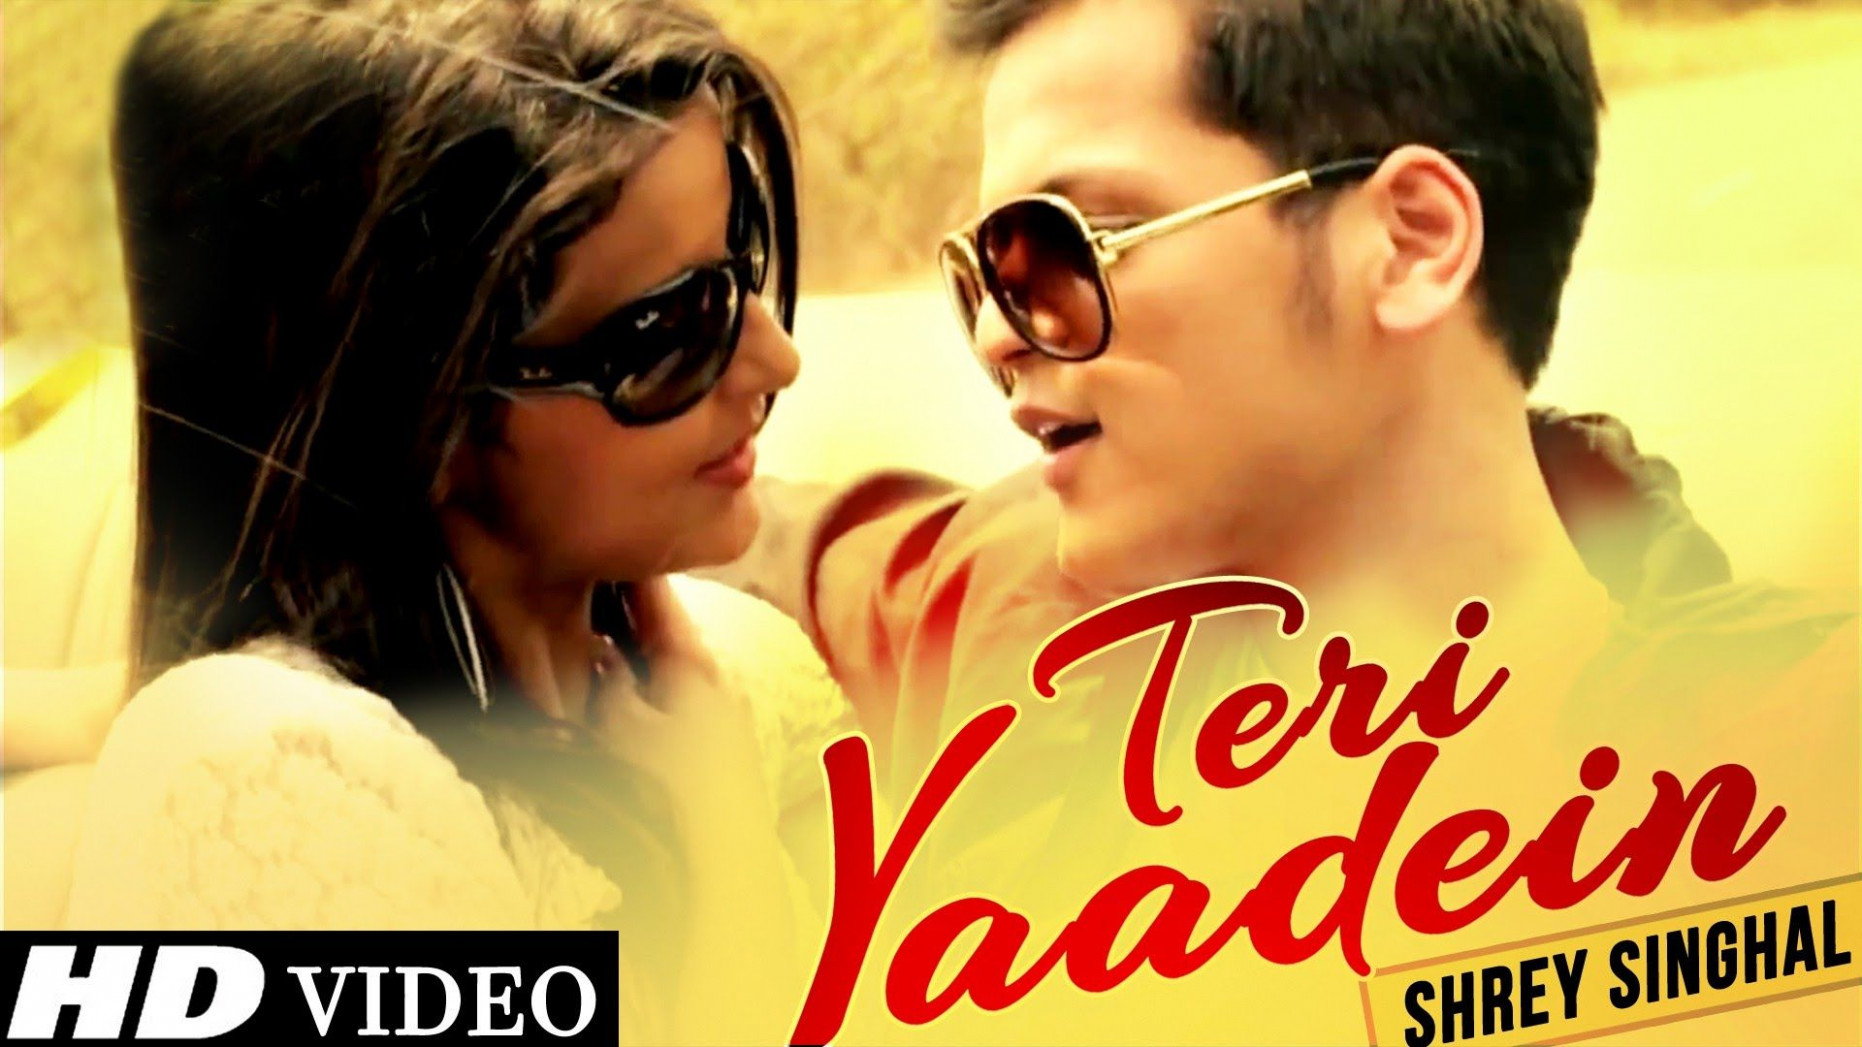 New Hindi Songs 2016 - #Teri Yaadein - #Shrey Singhal ...